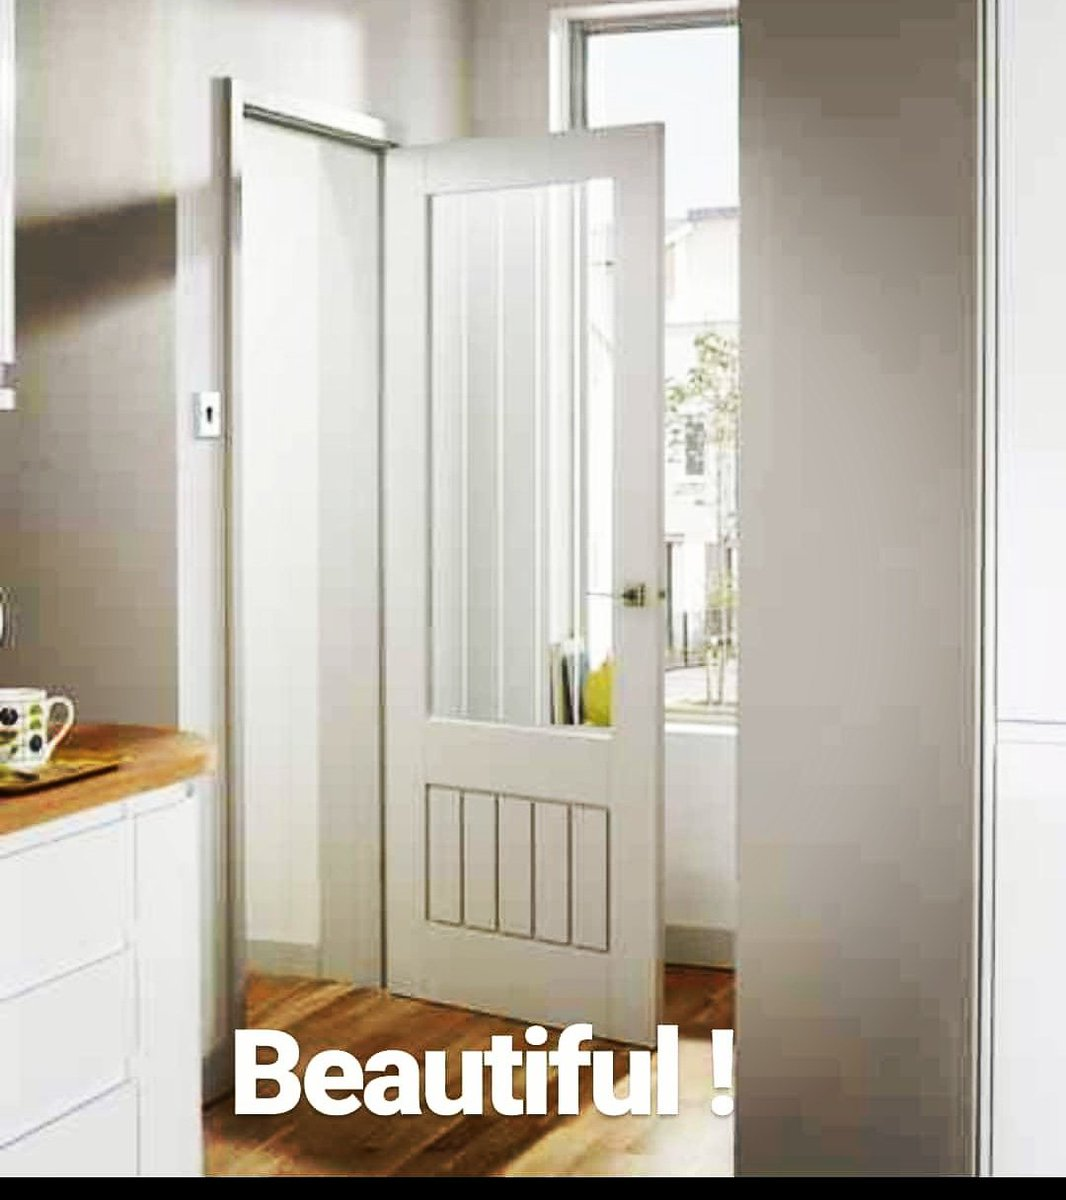 Glazed interior door that complements the popular cottage style comes with free fitting visit us at http www nufixdoors co uk call us on 01512089500